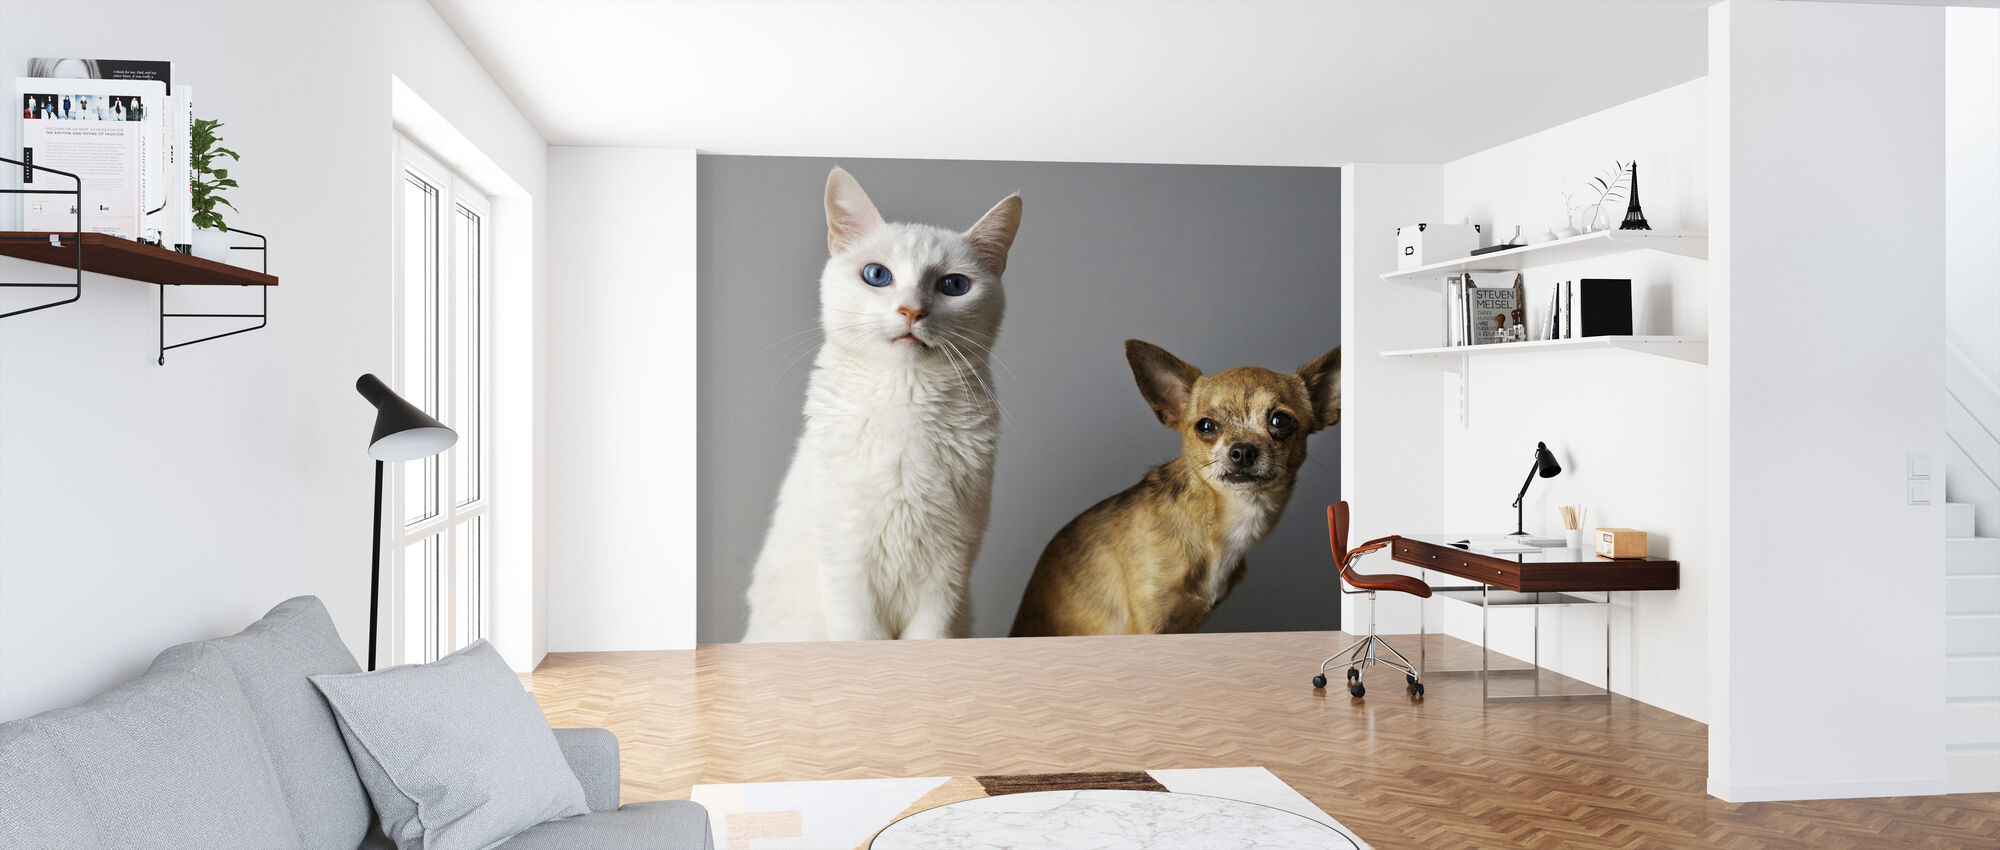 Duo of Cat and Dog - Wallpaper - Office